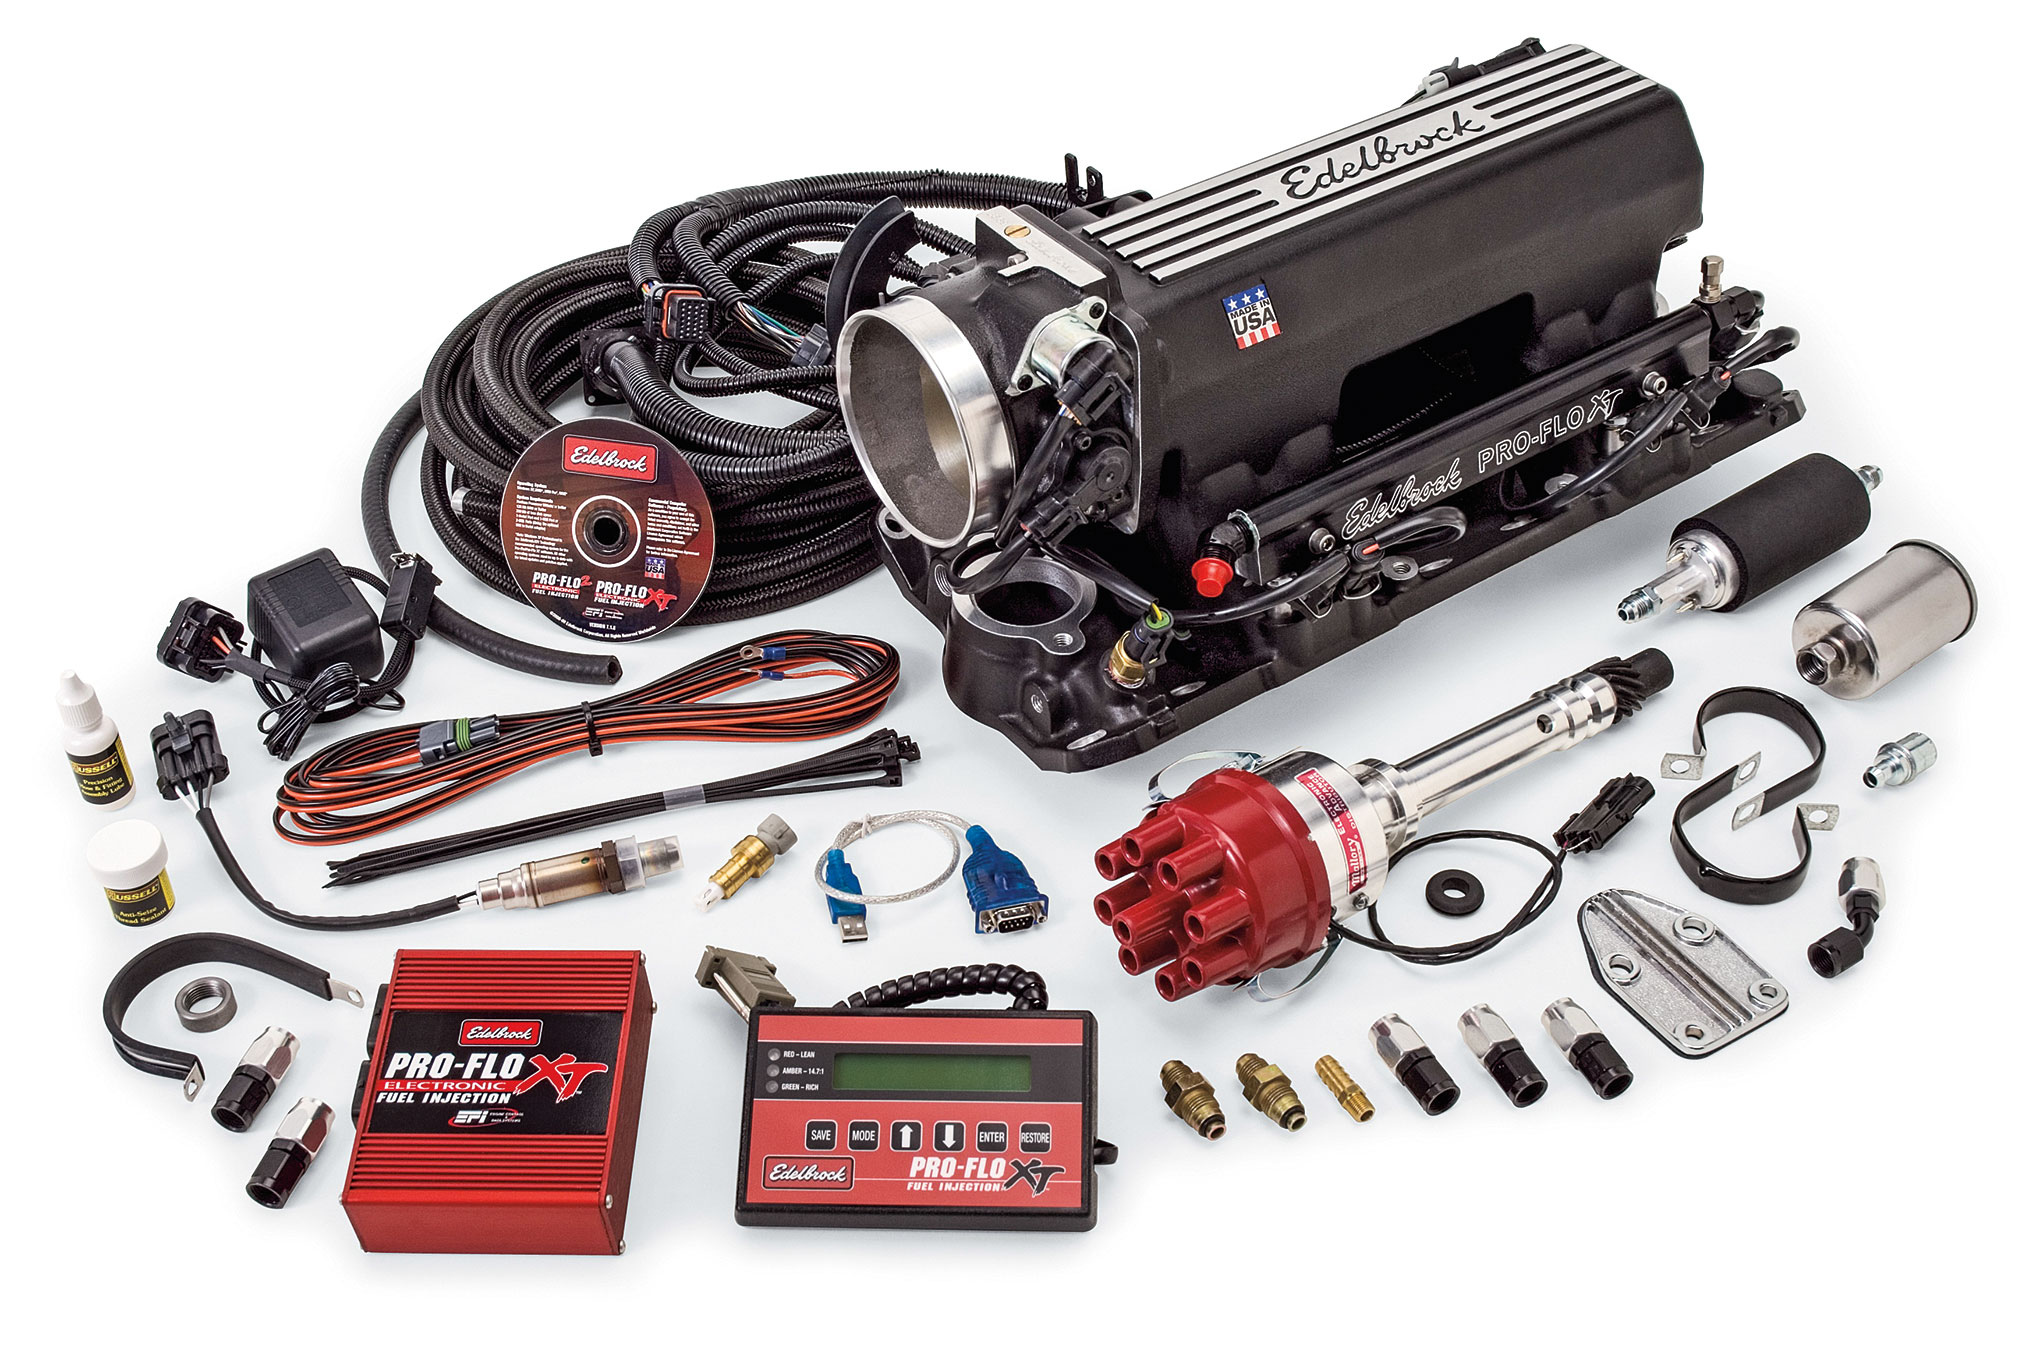 small resolution of fuel injection kits to replace your carb carb to tbi wiring harness kit